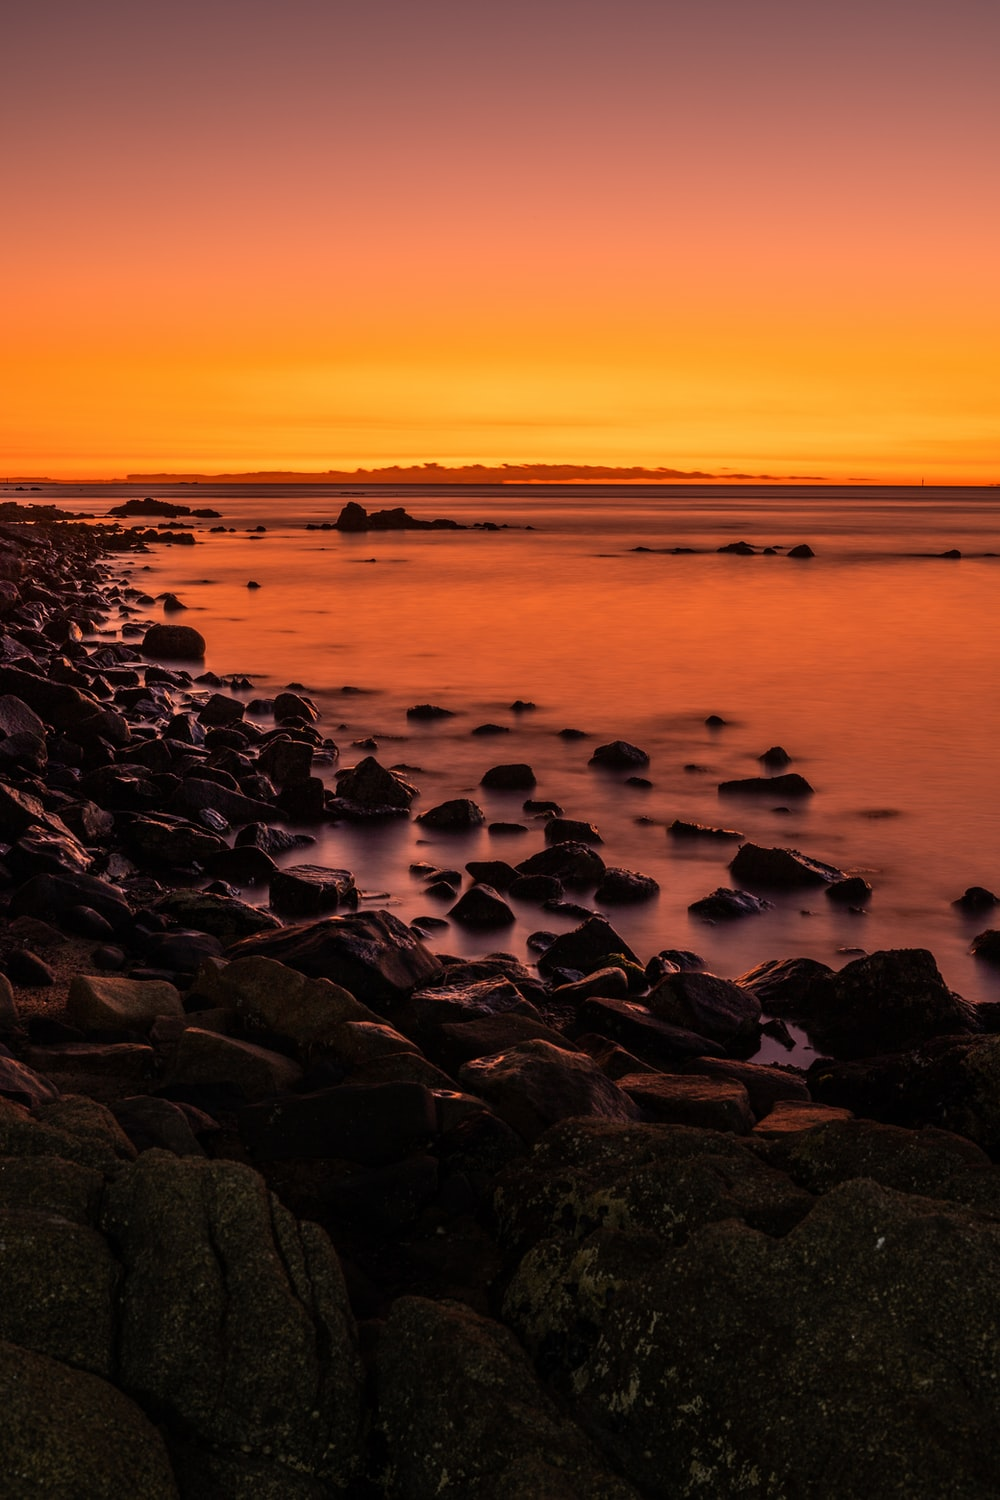 black and brown rocks on seashore during sunset